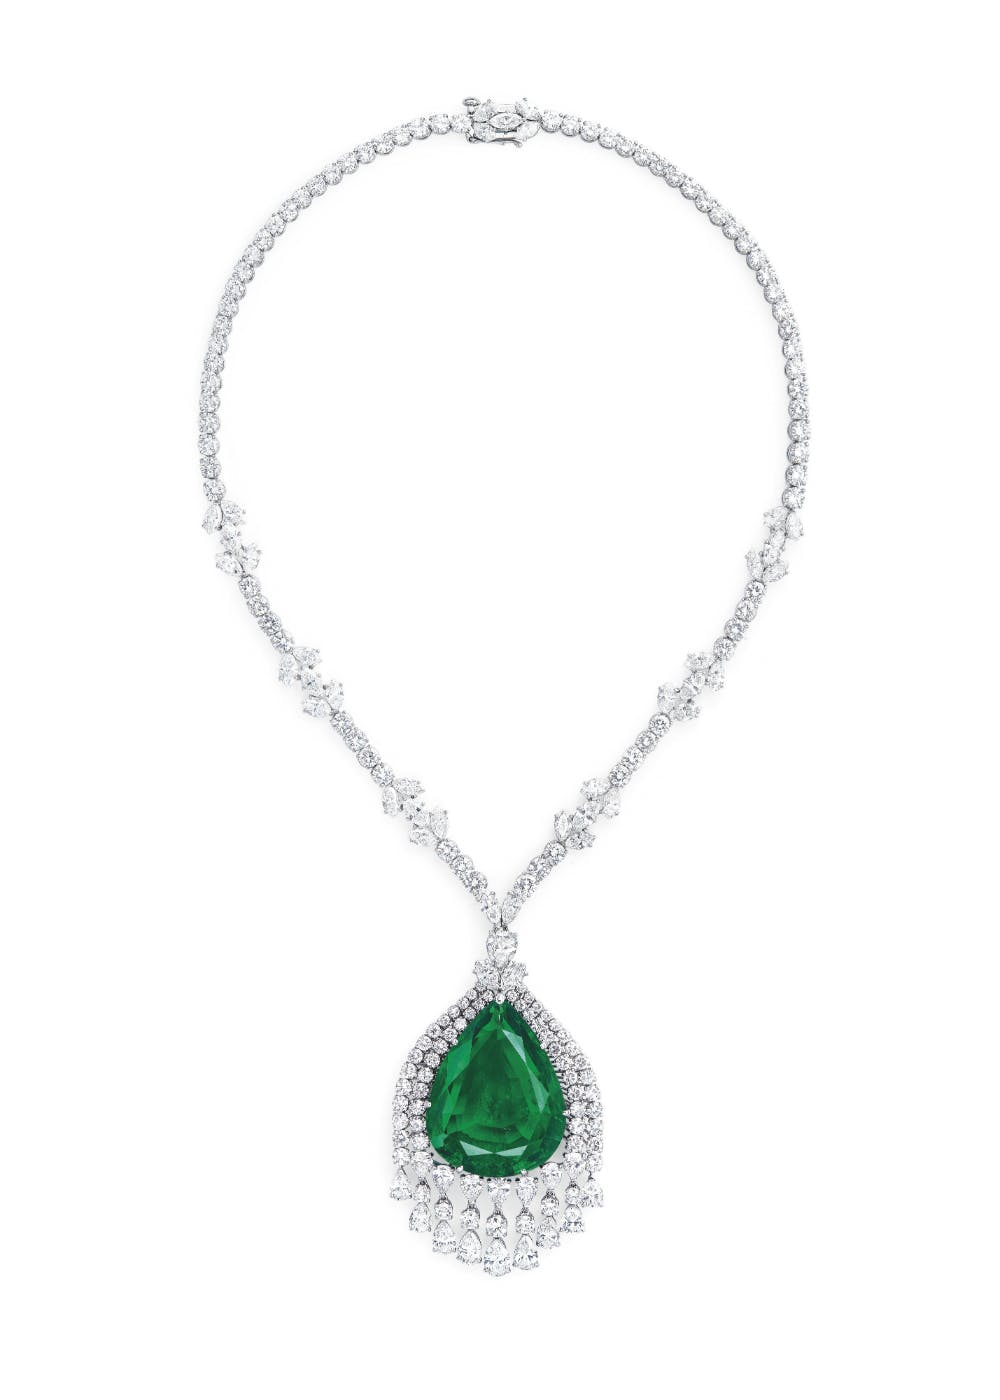 The emerald and diamond pendent necklace that will be sold by Christie's on May 15. Image: Christie's